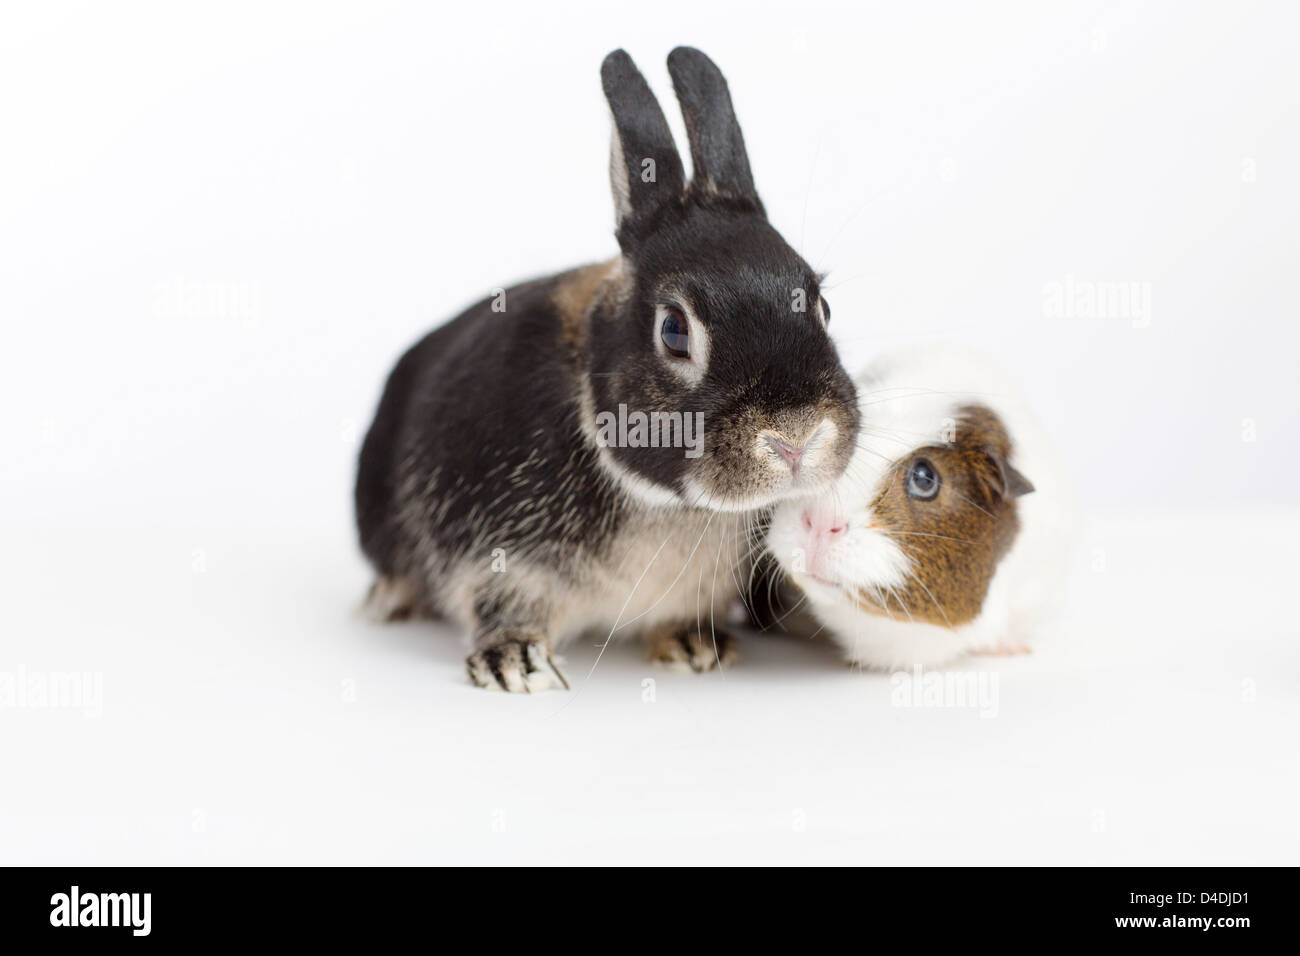 Rabbit and guinea pig meeting - Stock Image